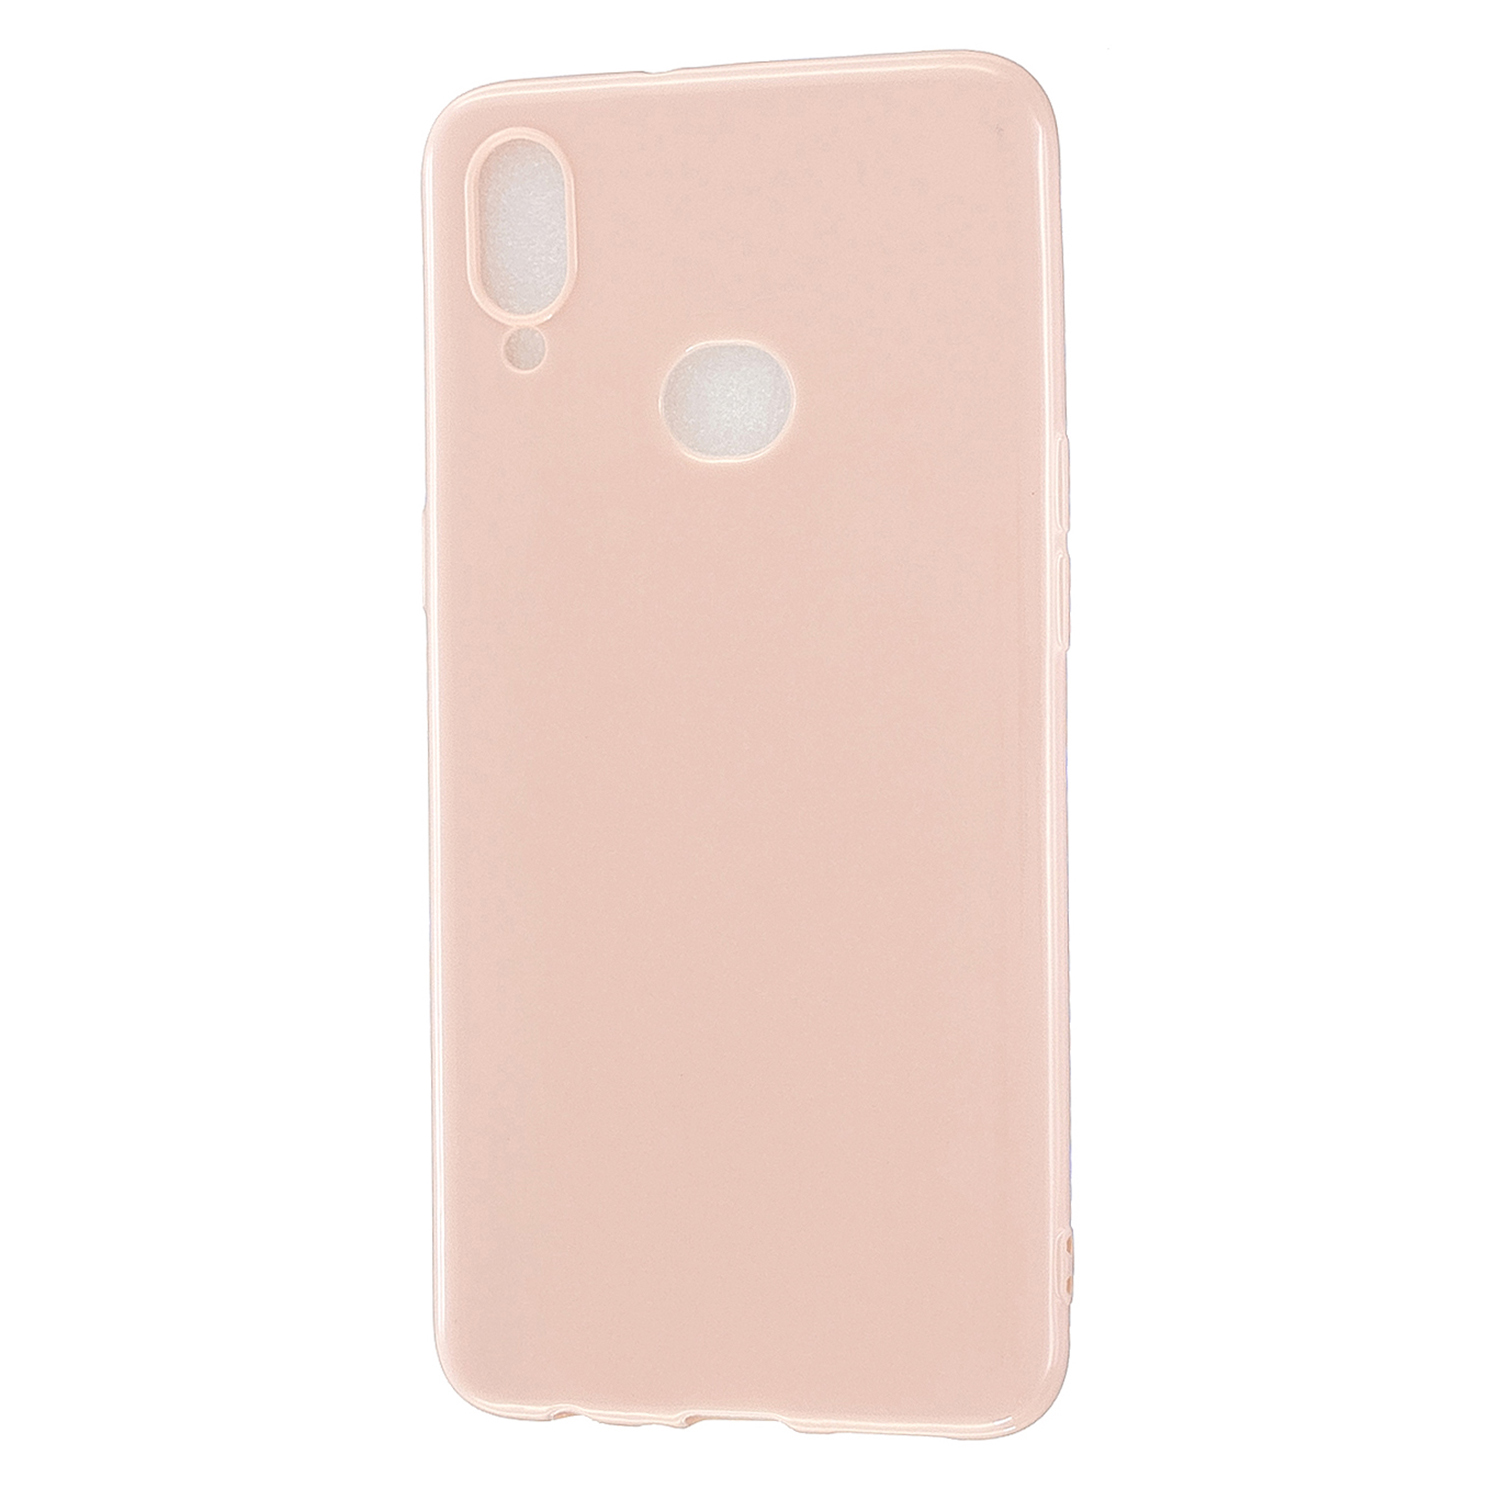 For Samsung A10S/A20S Cellphone Cover Soft TPU Phone Case Simple Profile Full Body Protection Anti-scratch Shell Sakura pink